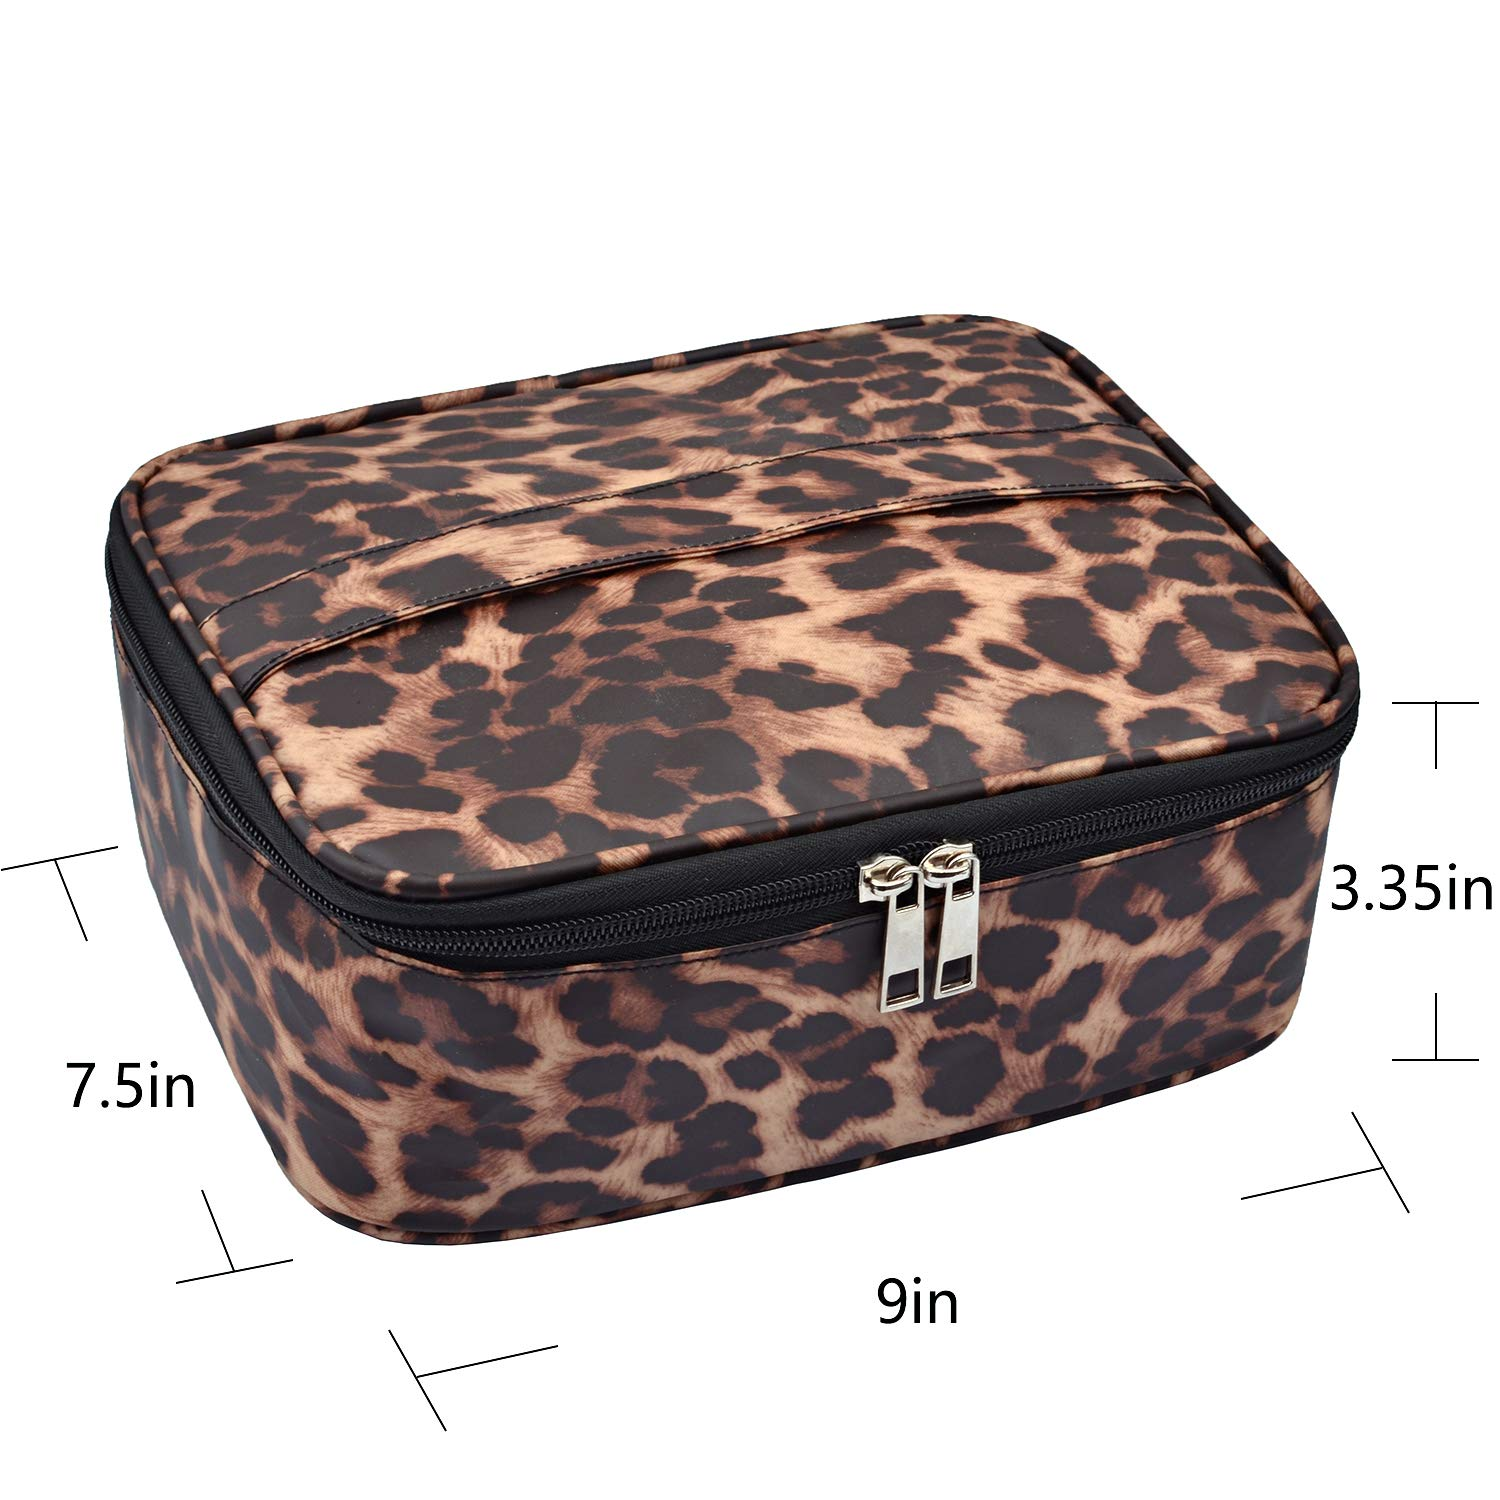 MKPCW Portable Travel Makeup Cosmetic Bags Organizer Multifunction Case Toiletry Bags for Women : Beauty